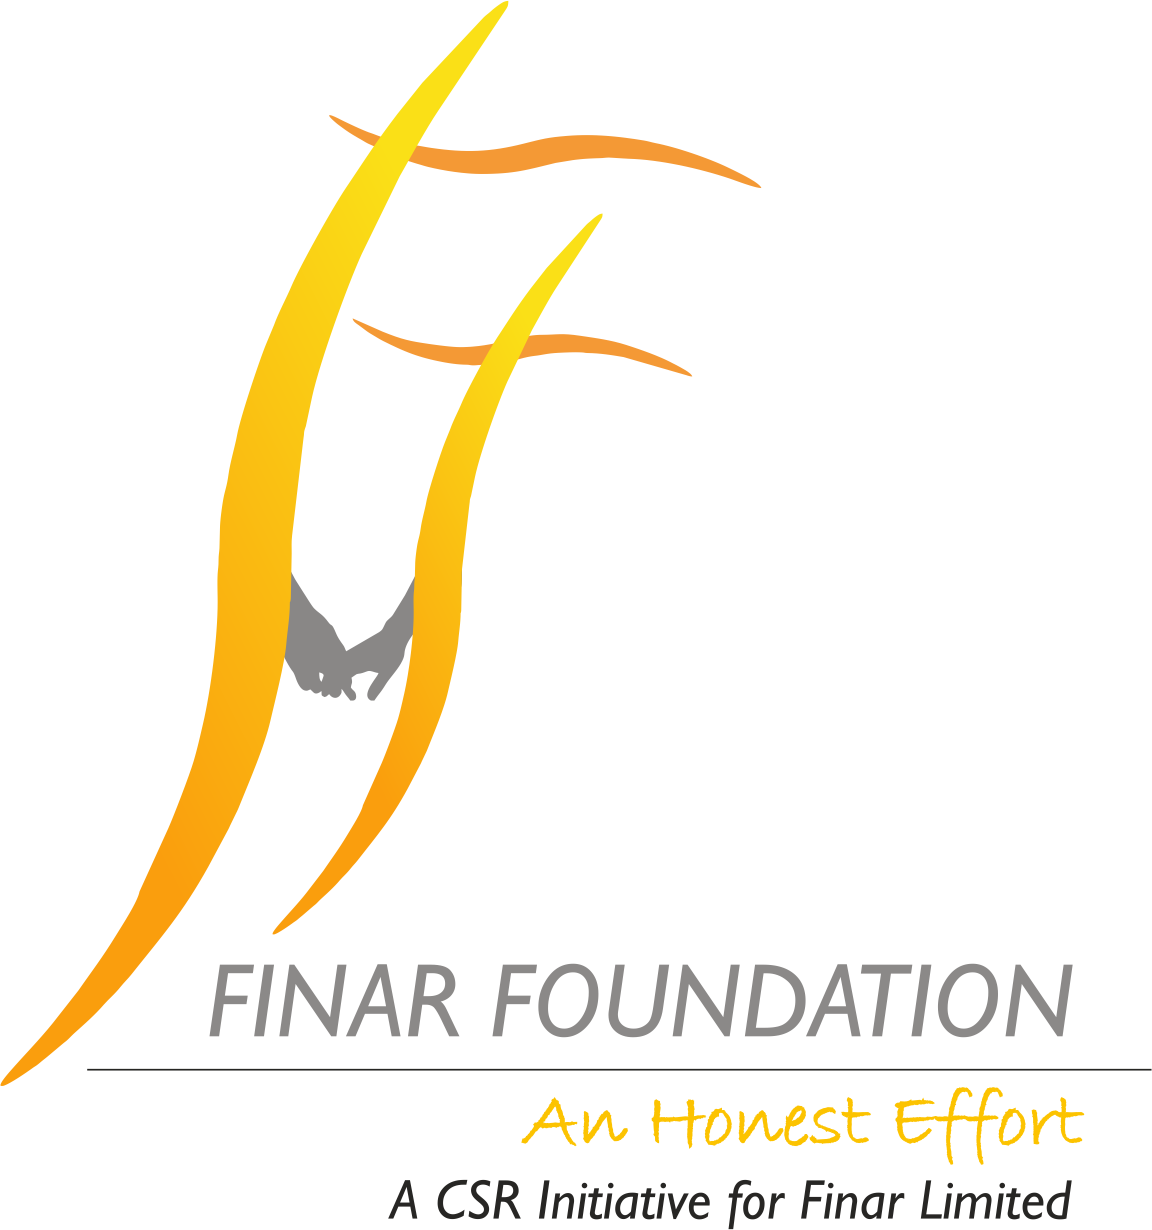 Finar Foundation